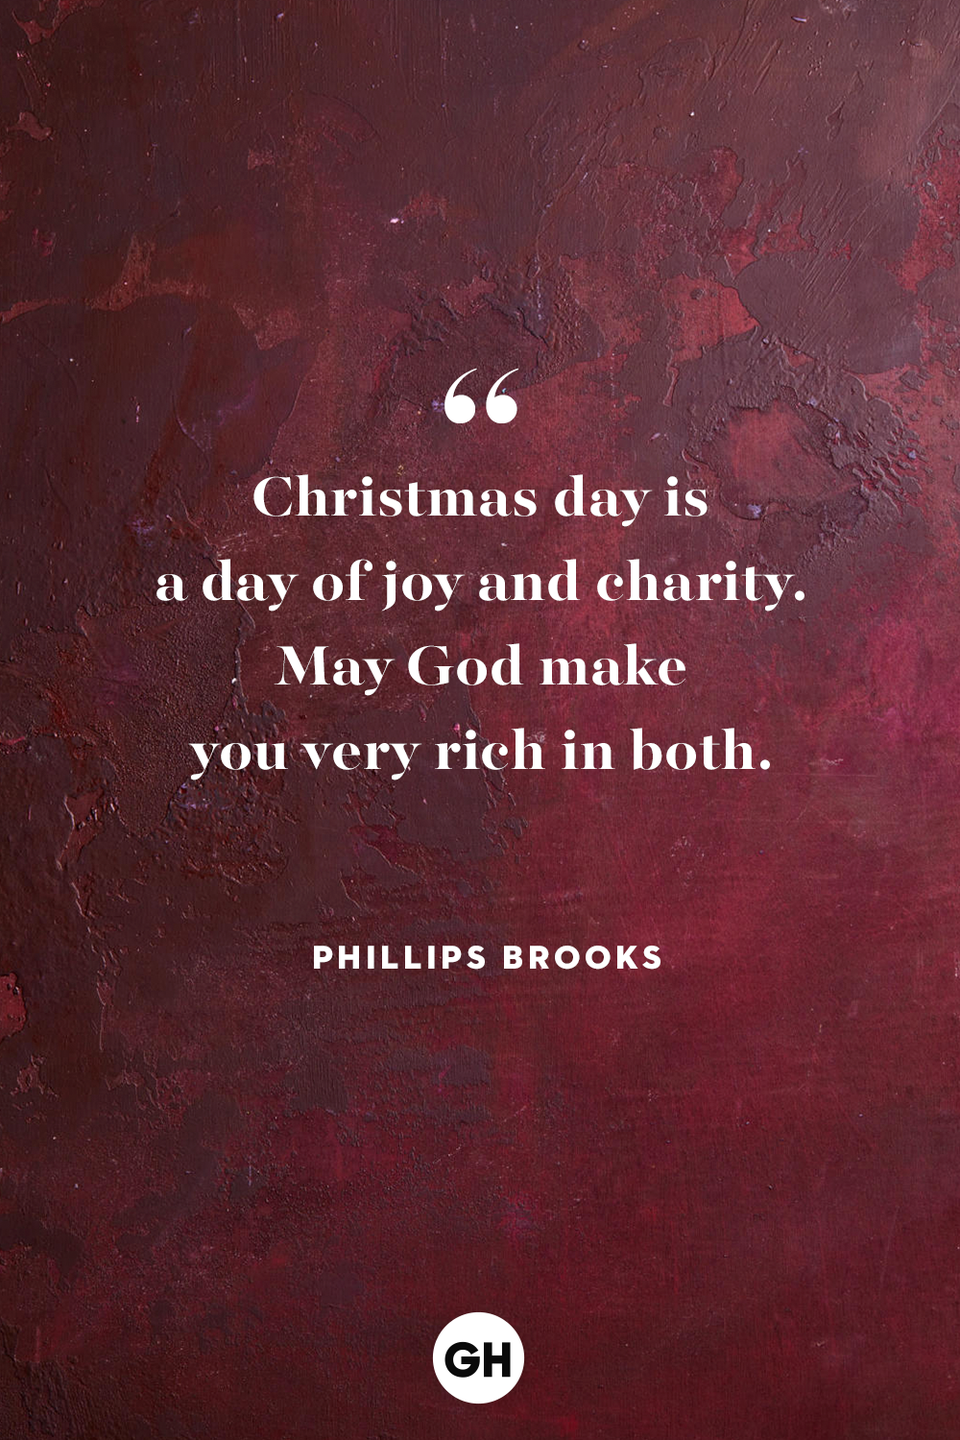 <p>Christmas day is a day of joy and charity. May God make you very rich in both.</p>